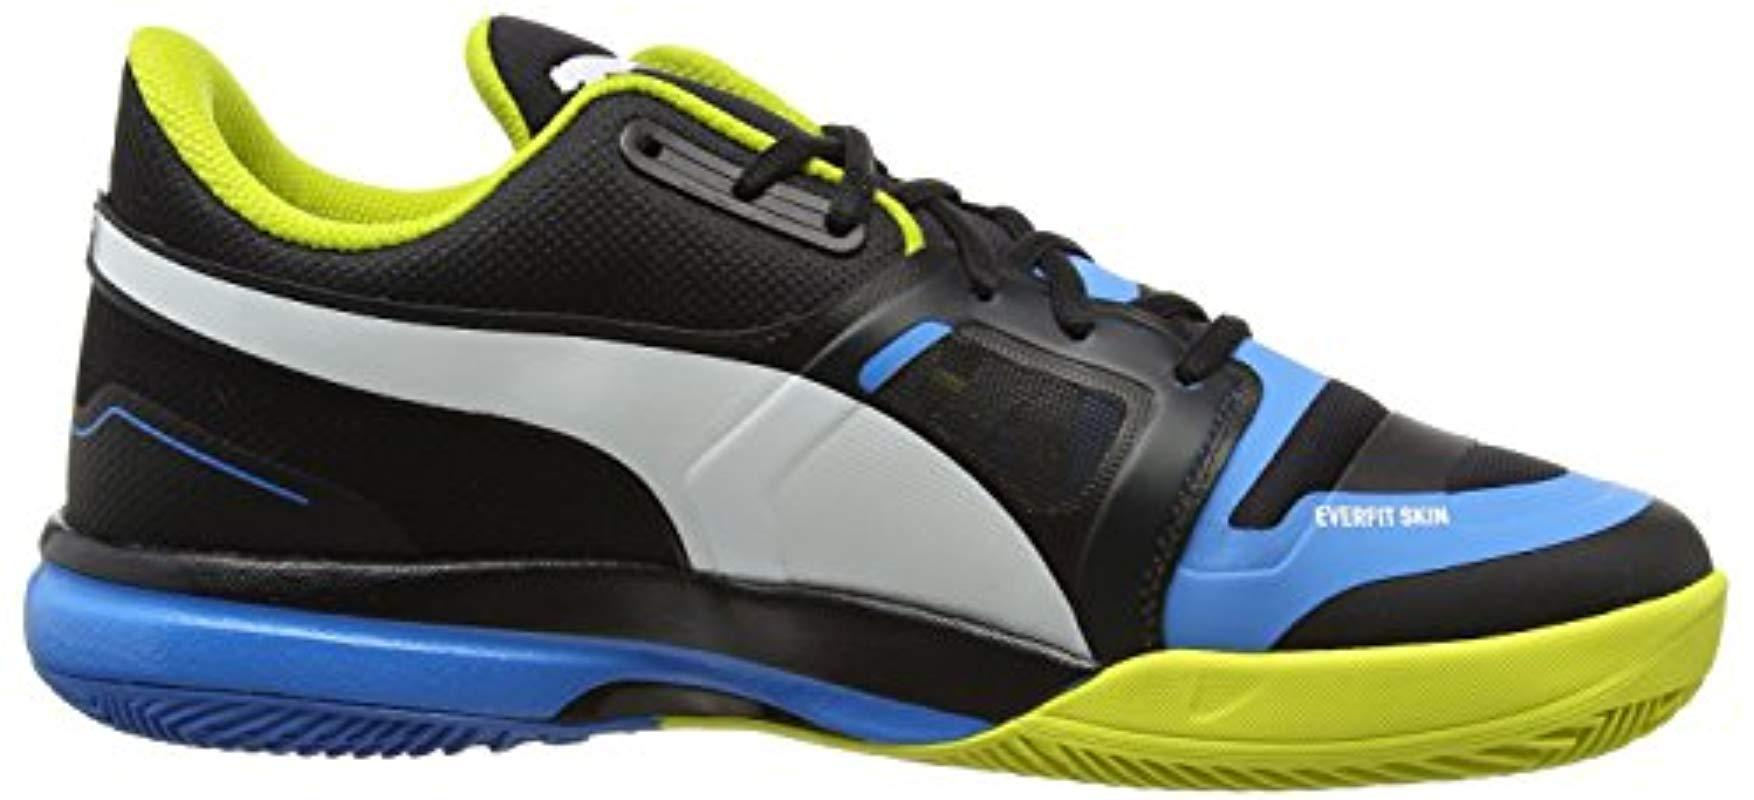 Shoes Black In 1Indoor Lyst Evoimpact Men Puma For bfgv76Yy